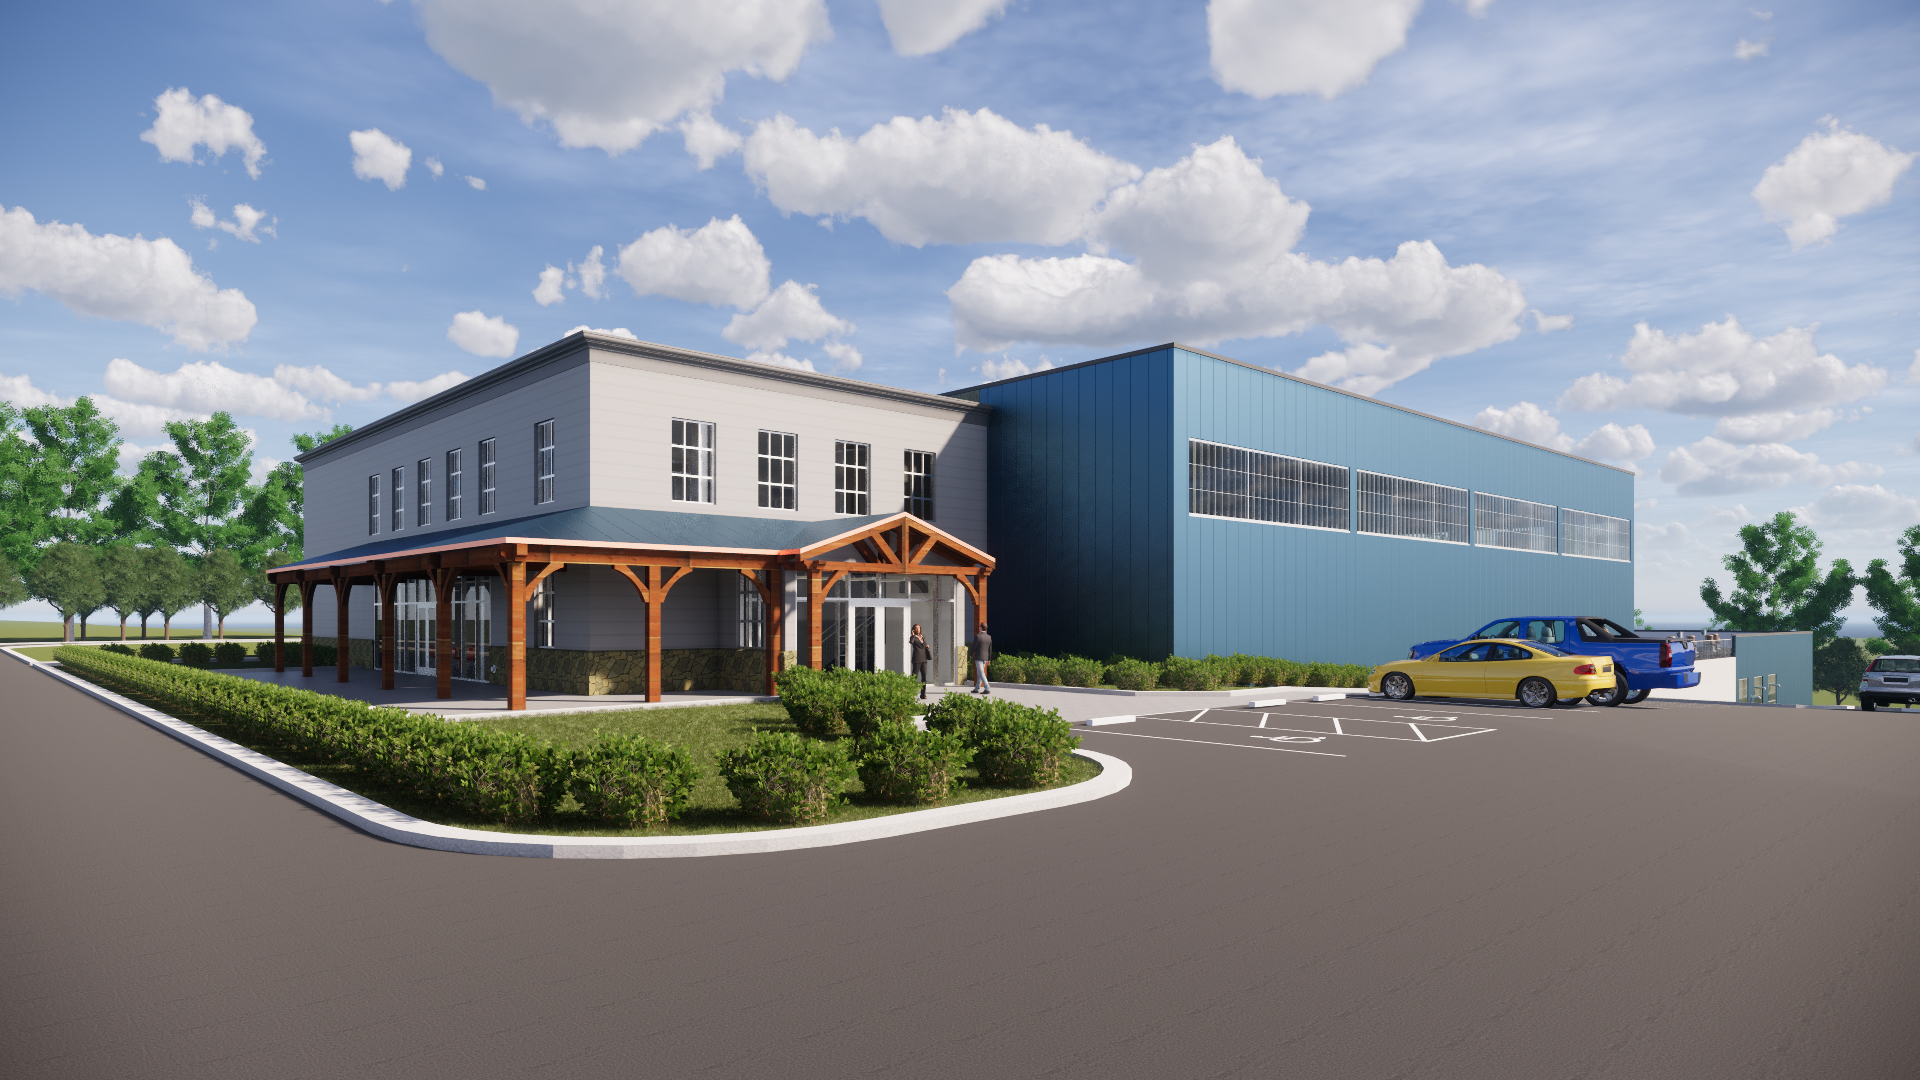 Saco River Water Treatment Facility Rendering